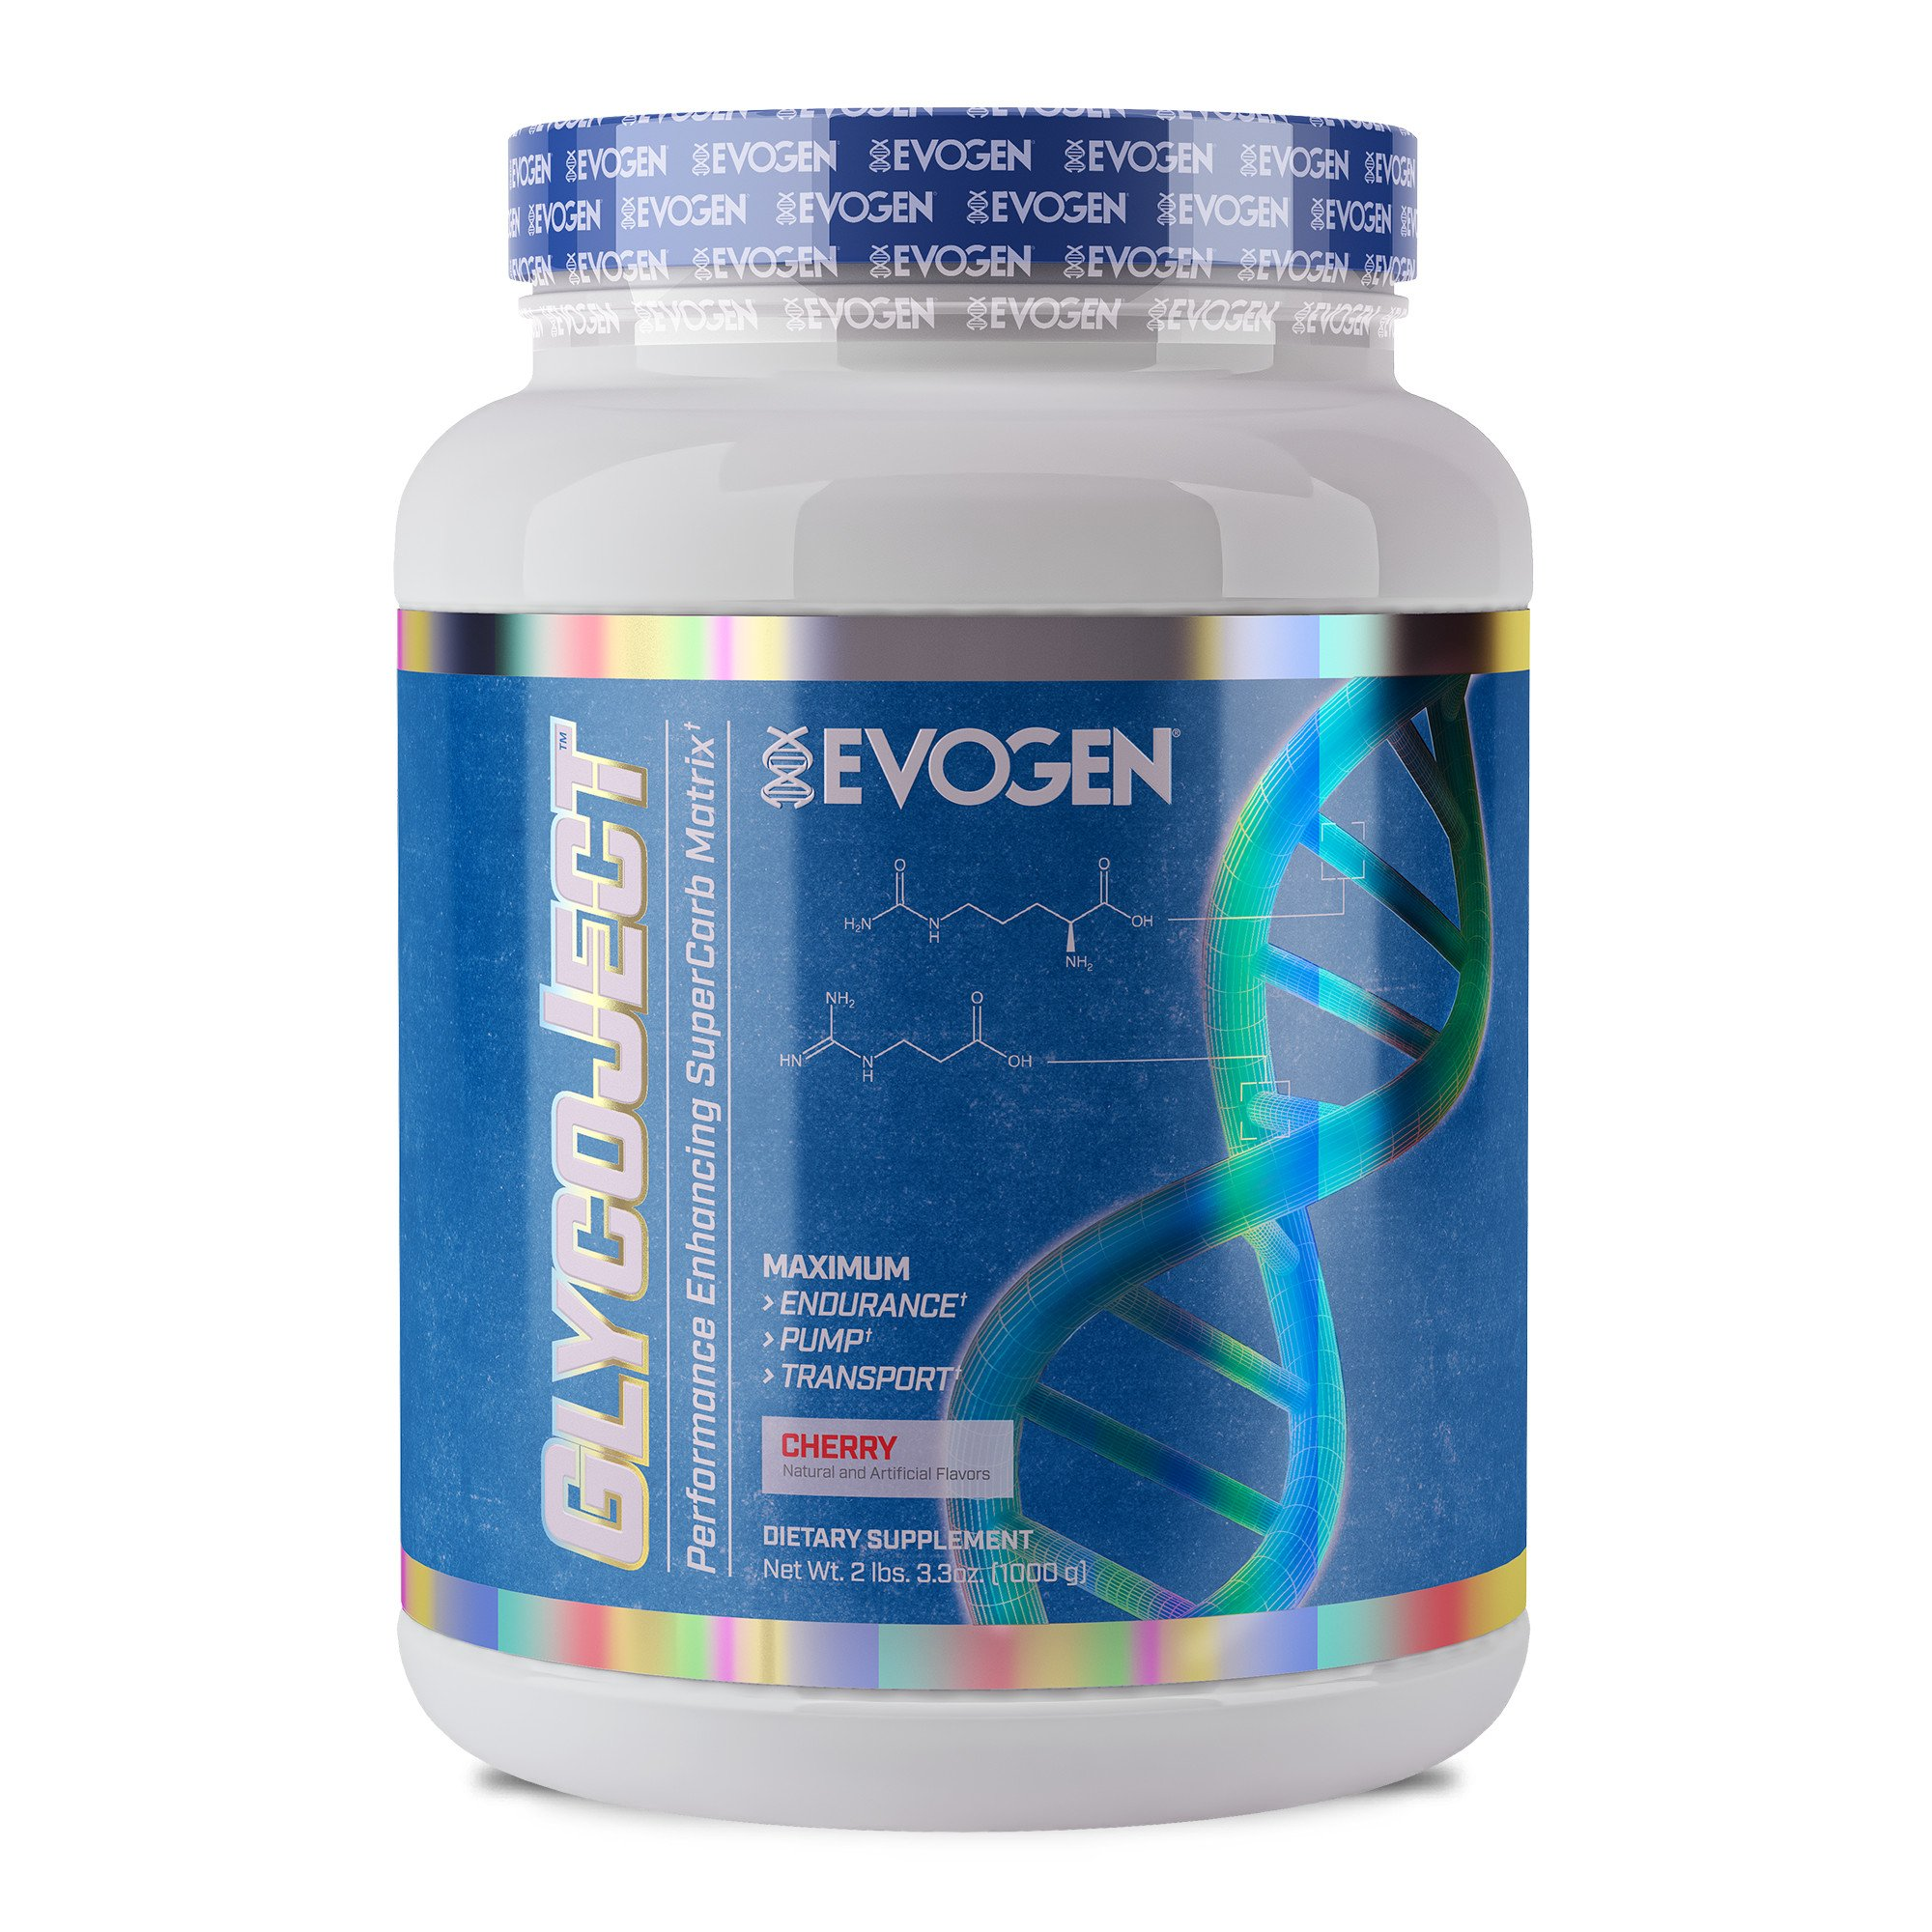 Evogen GlycoJect | Extreme Karbolyn® Carbohydrate Powder | Cherry | 36 servings …